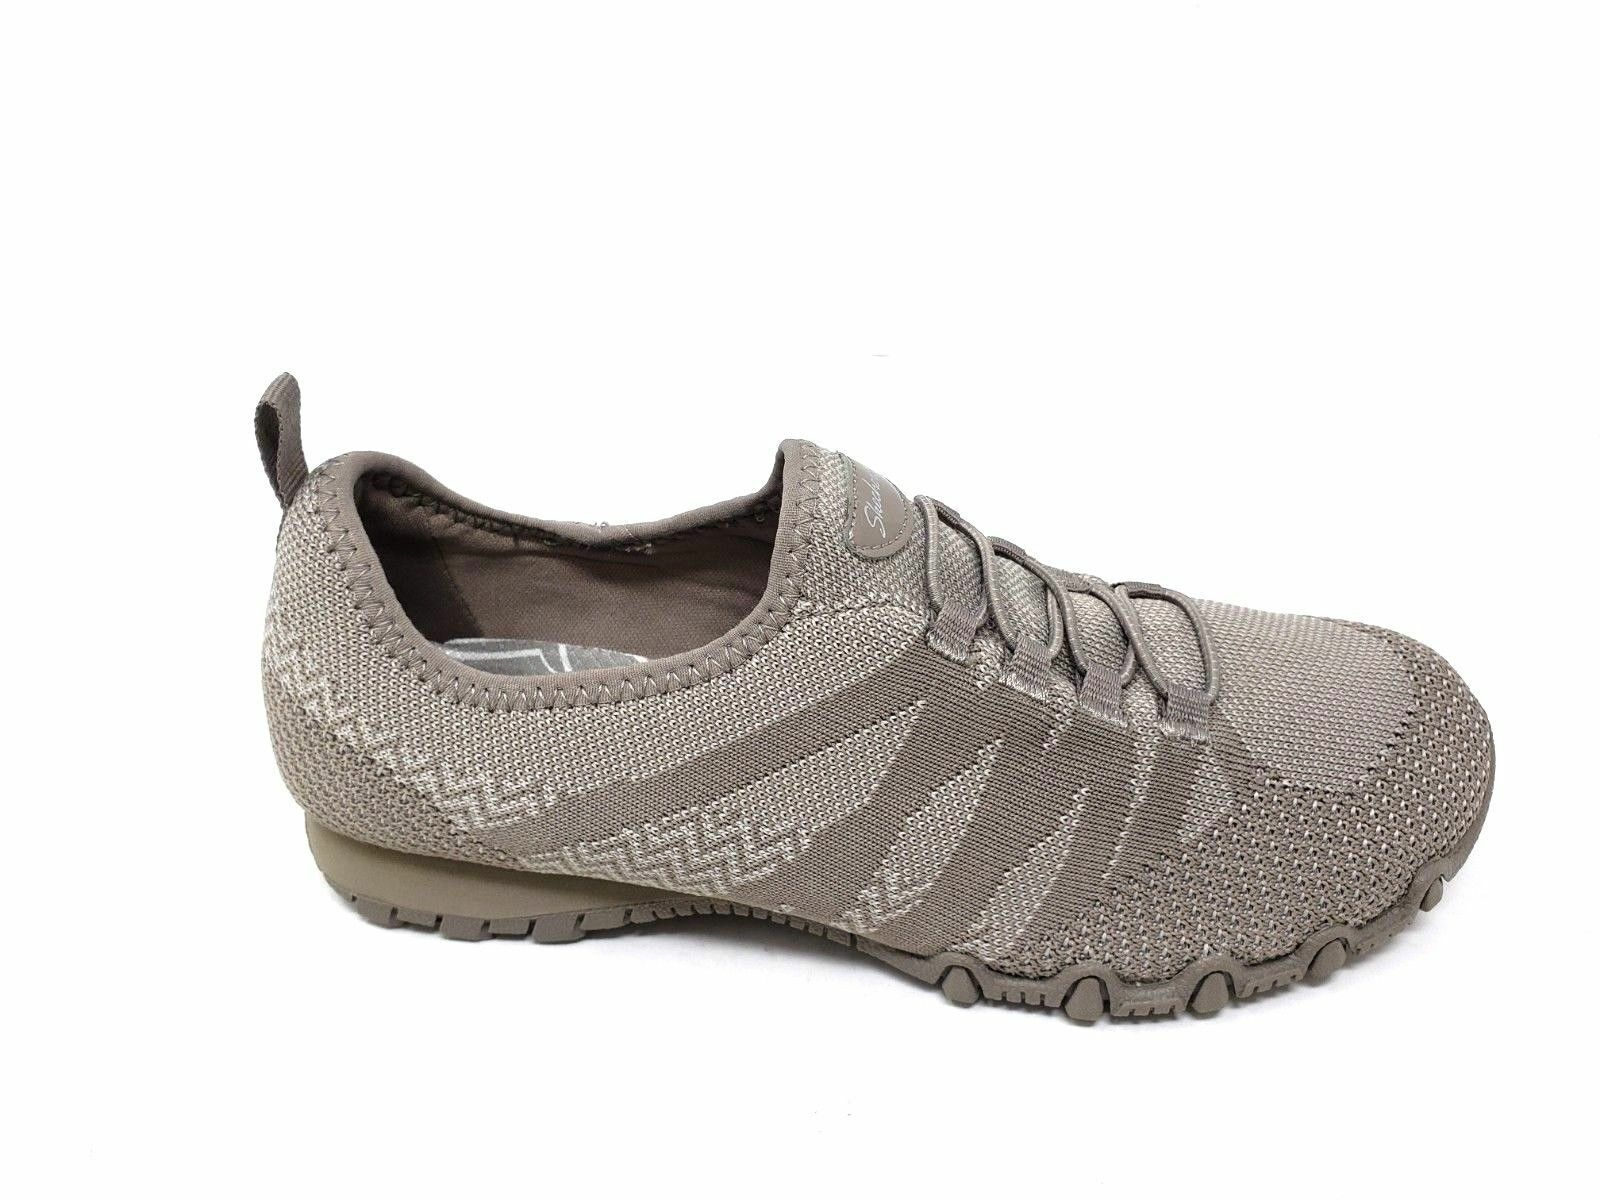 49422 Skechers Womens Relaxed Fit  Bikers Get With Knit Sneakers Taupe   BR38